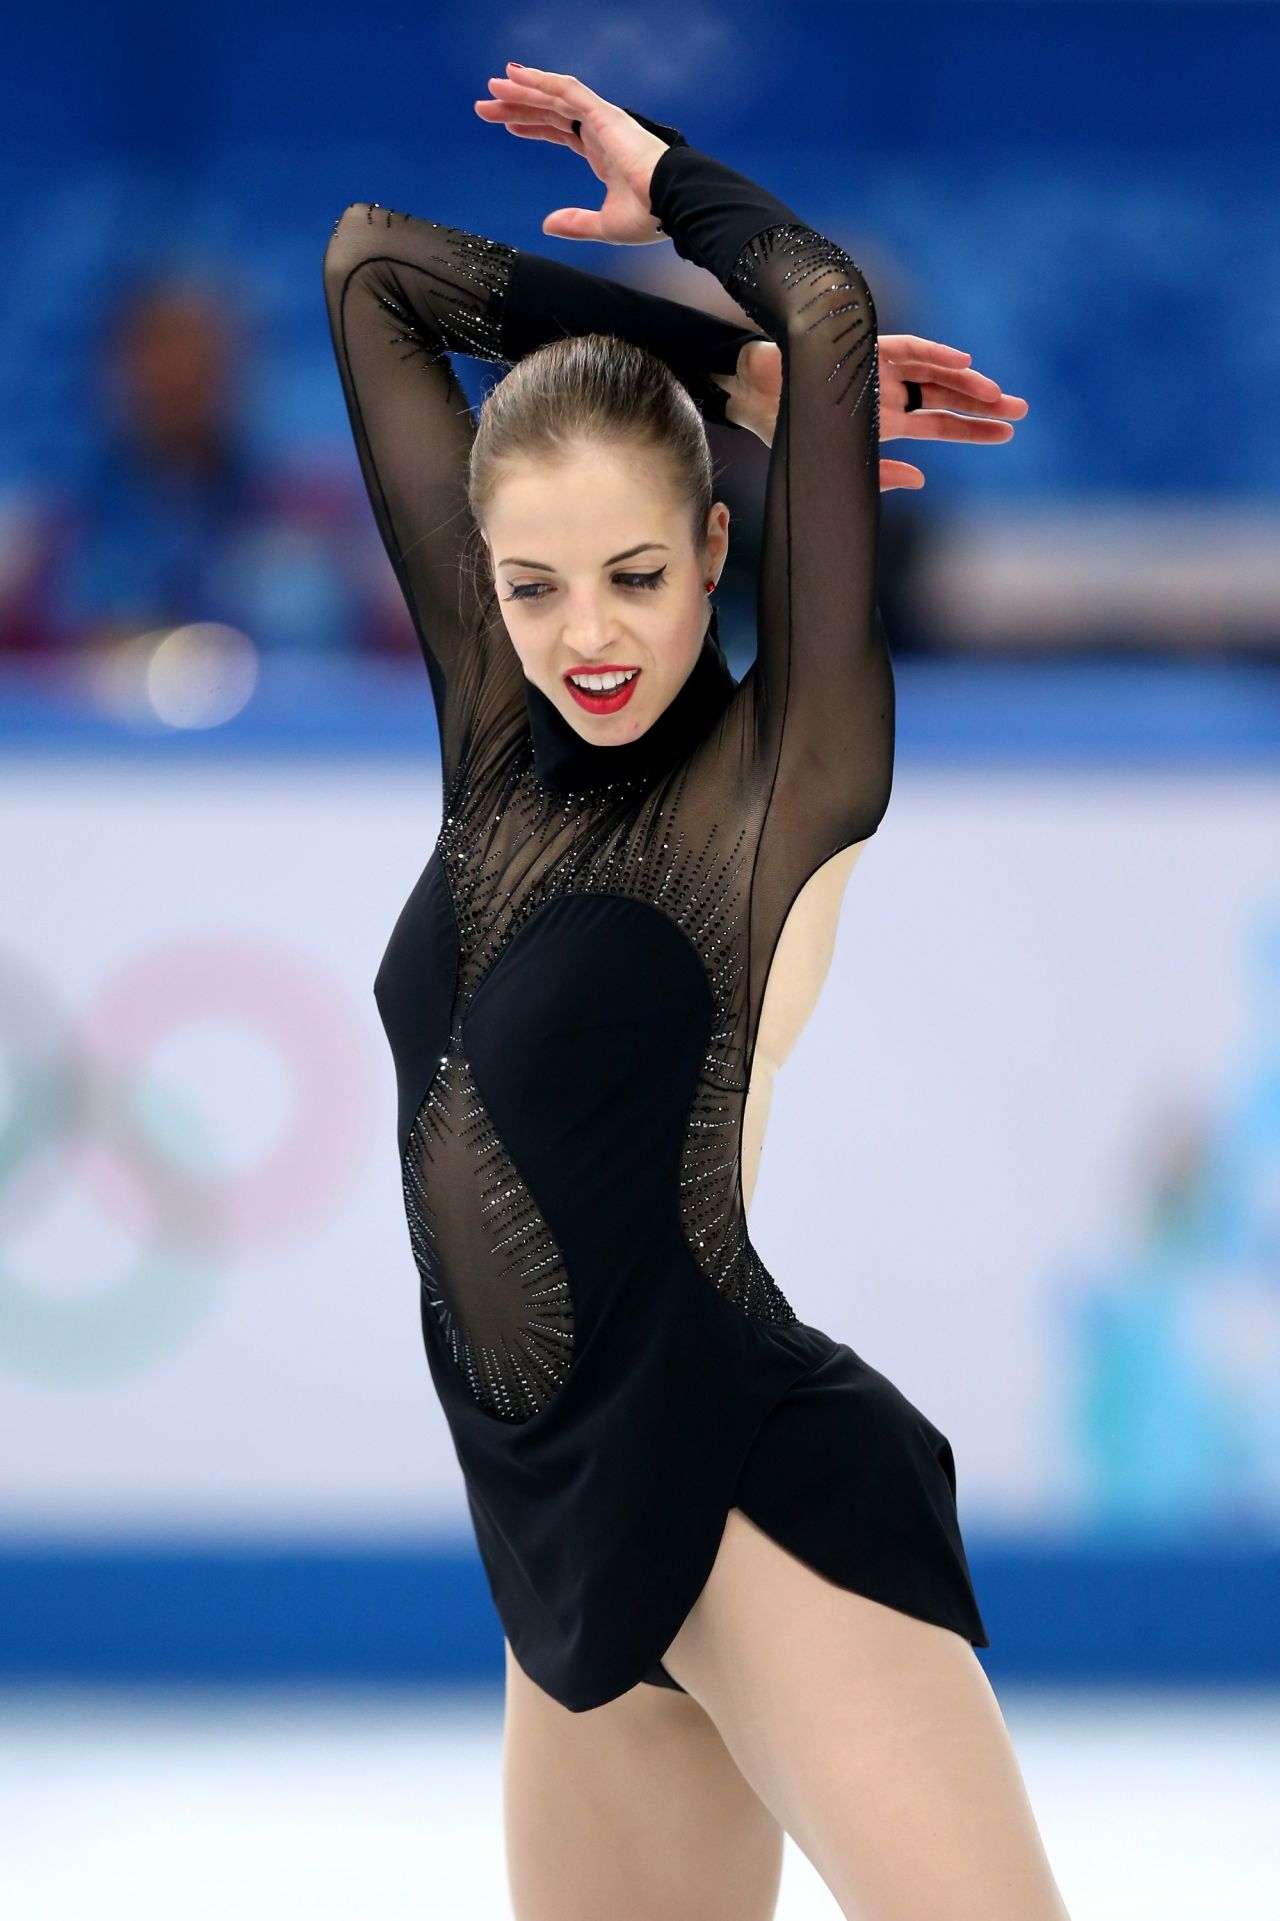 Carolina Kostner - Women's Figure Skating Free Program – 2014 Sochi Winter Olympics